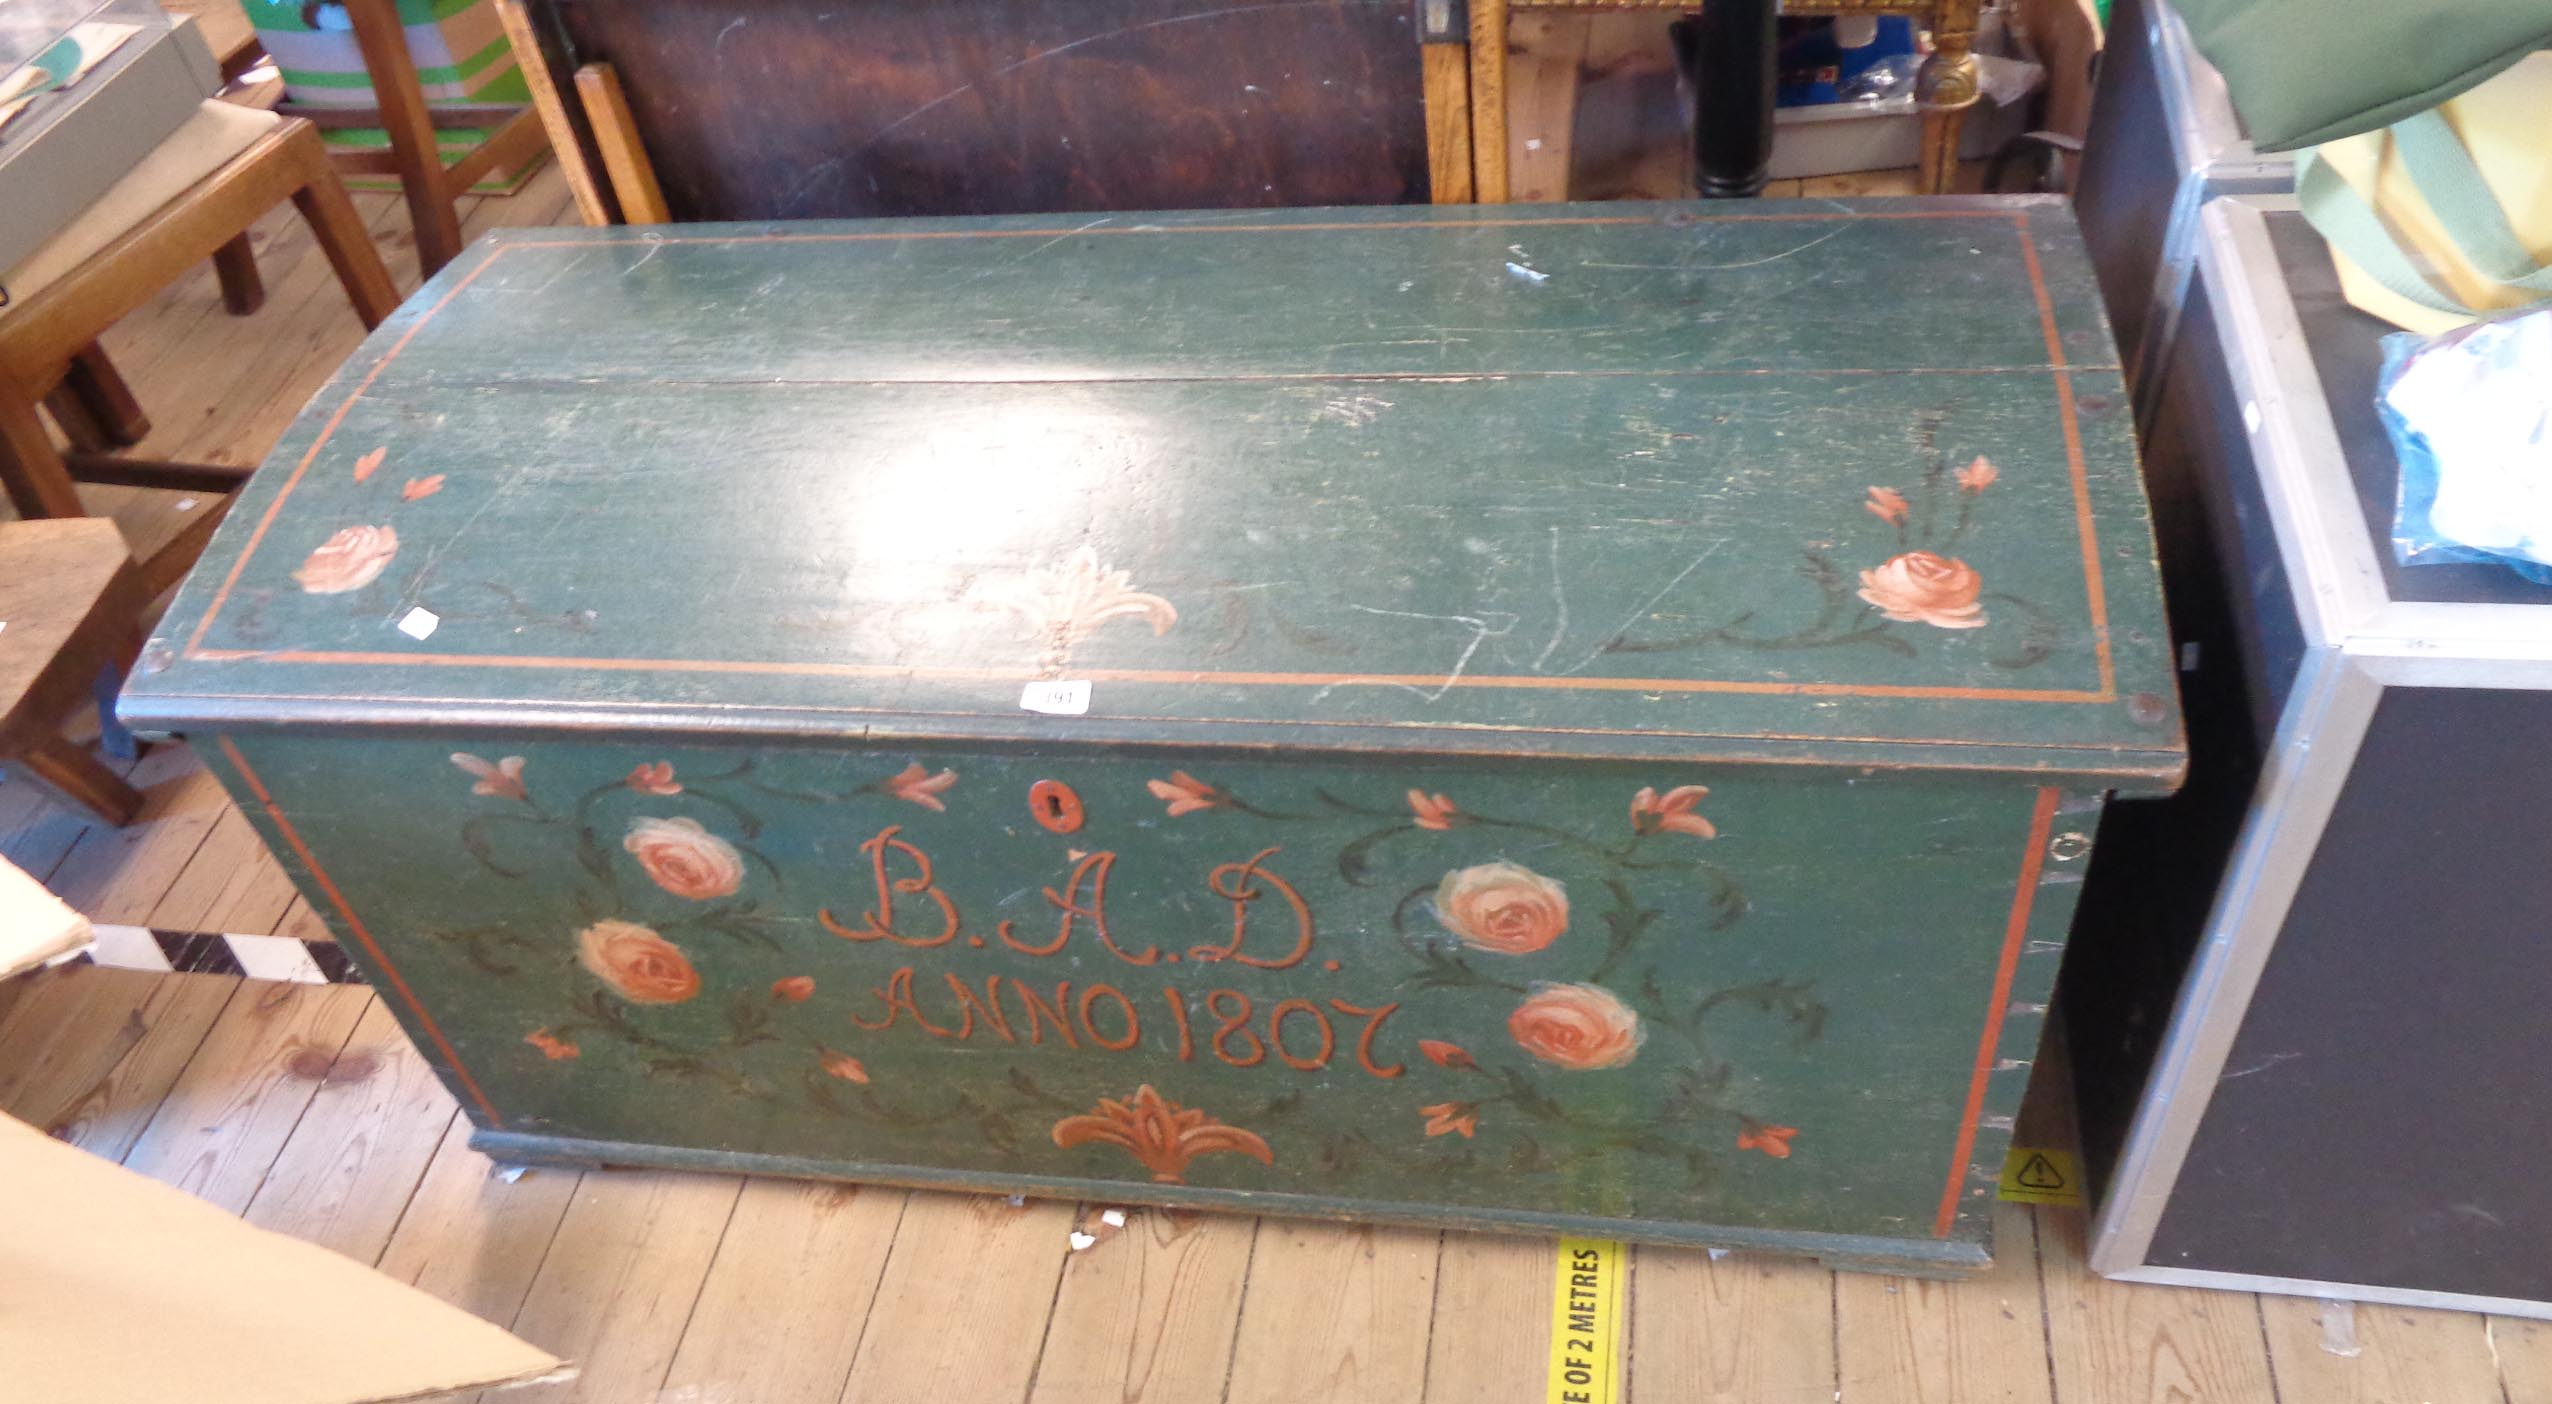 A 1.23m antique oak dome-top linen chest with painted floral decoration on green ground, text B.A.D.